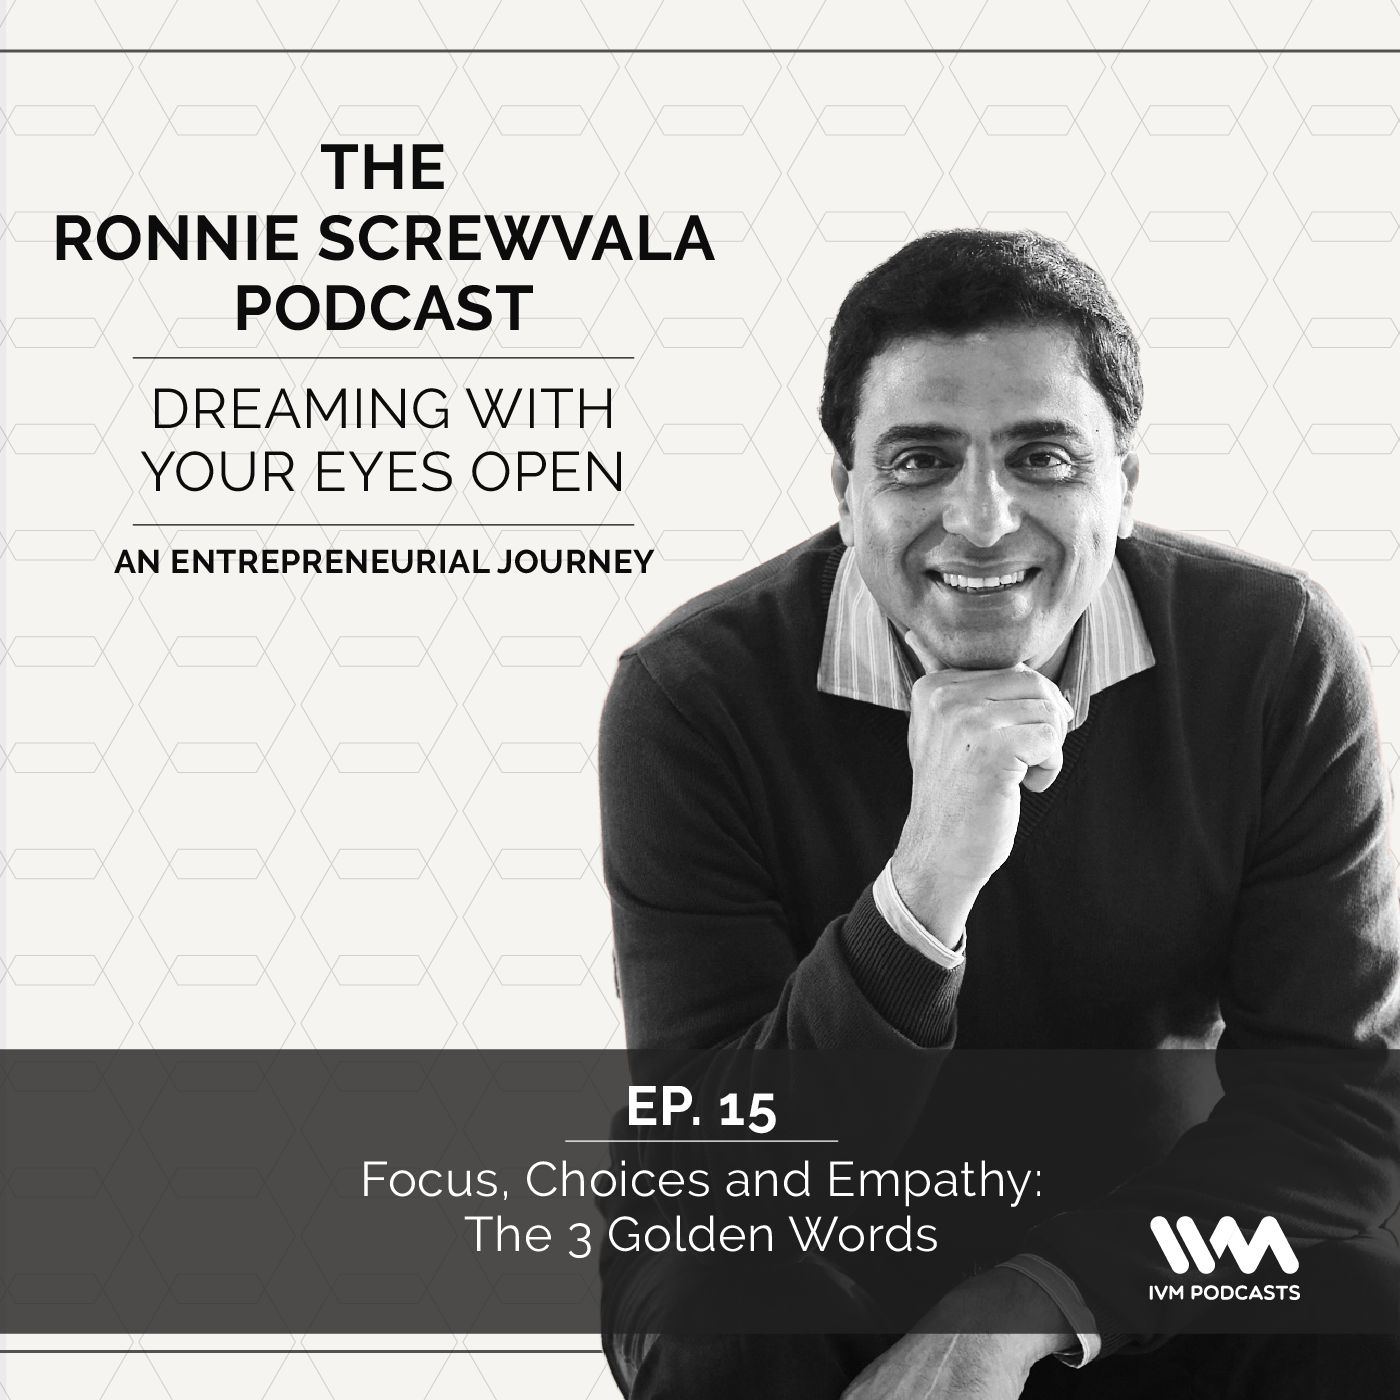 Ep. 15: Focus, Choices and Empathy: The 3 Golden Words